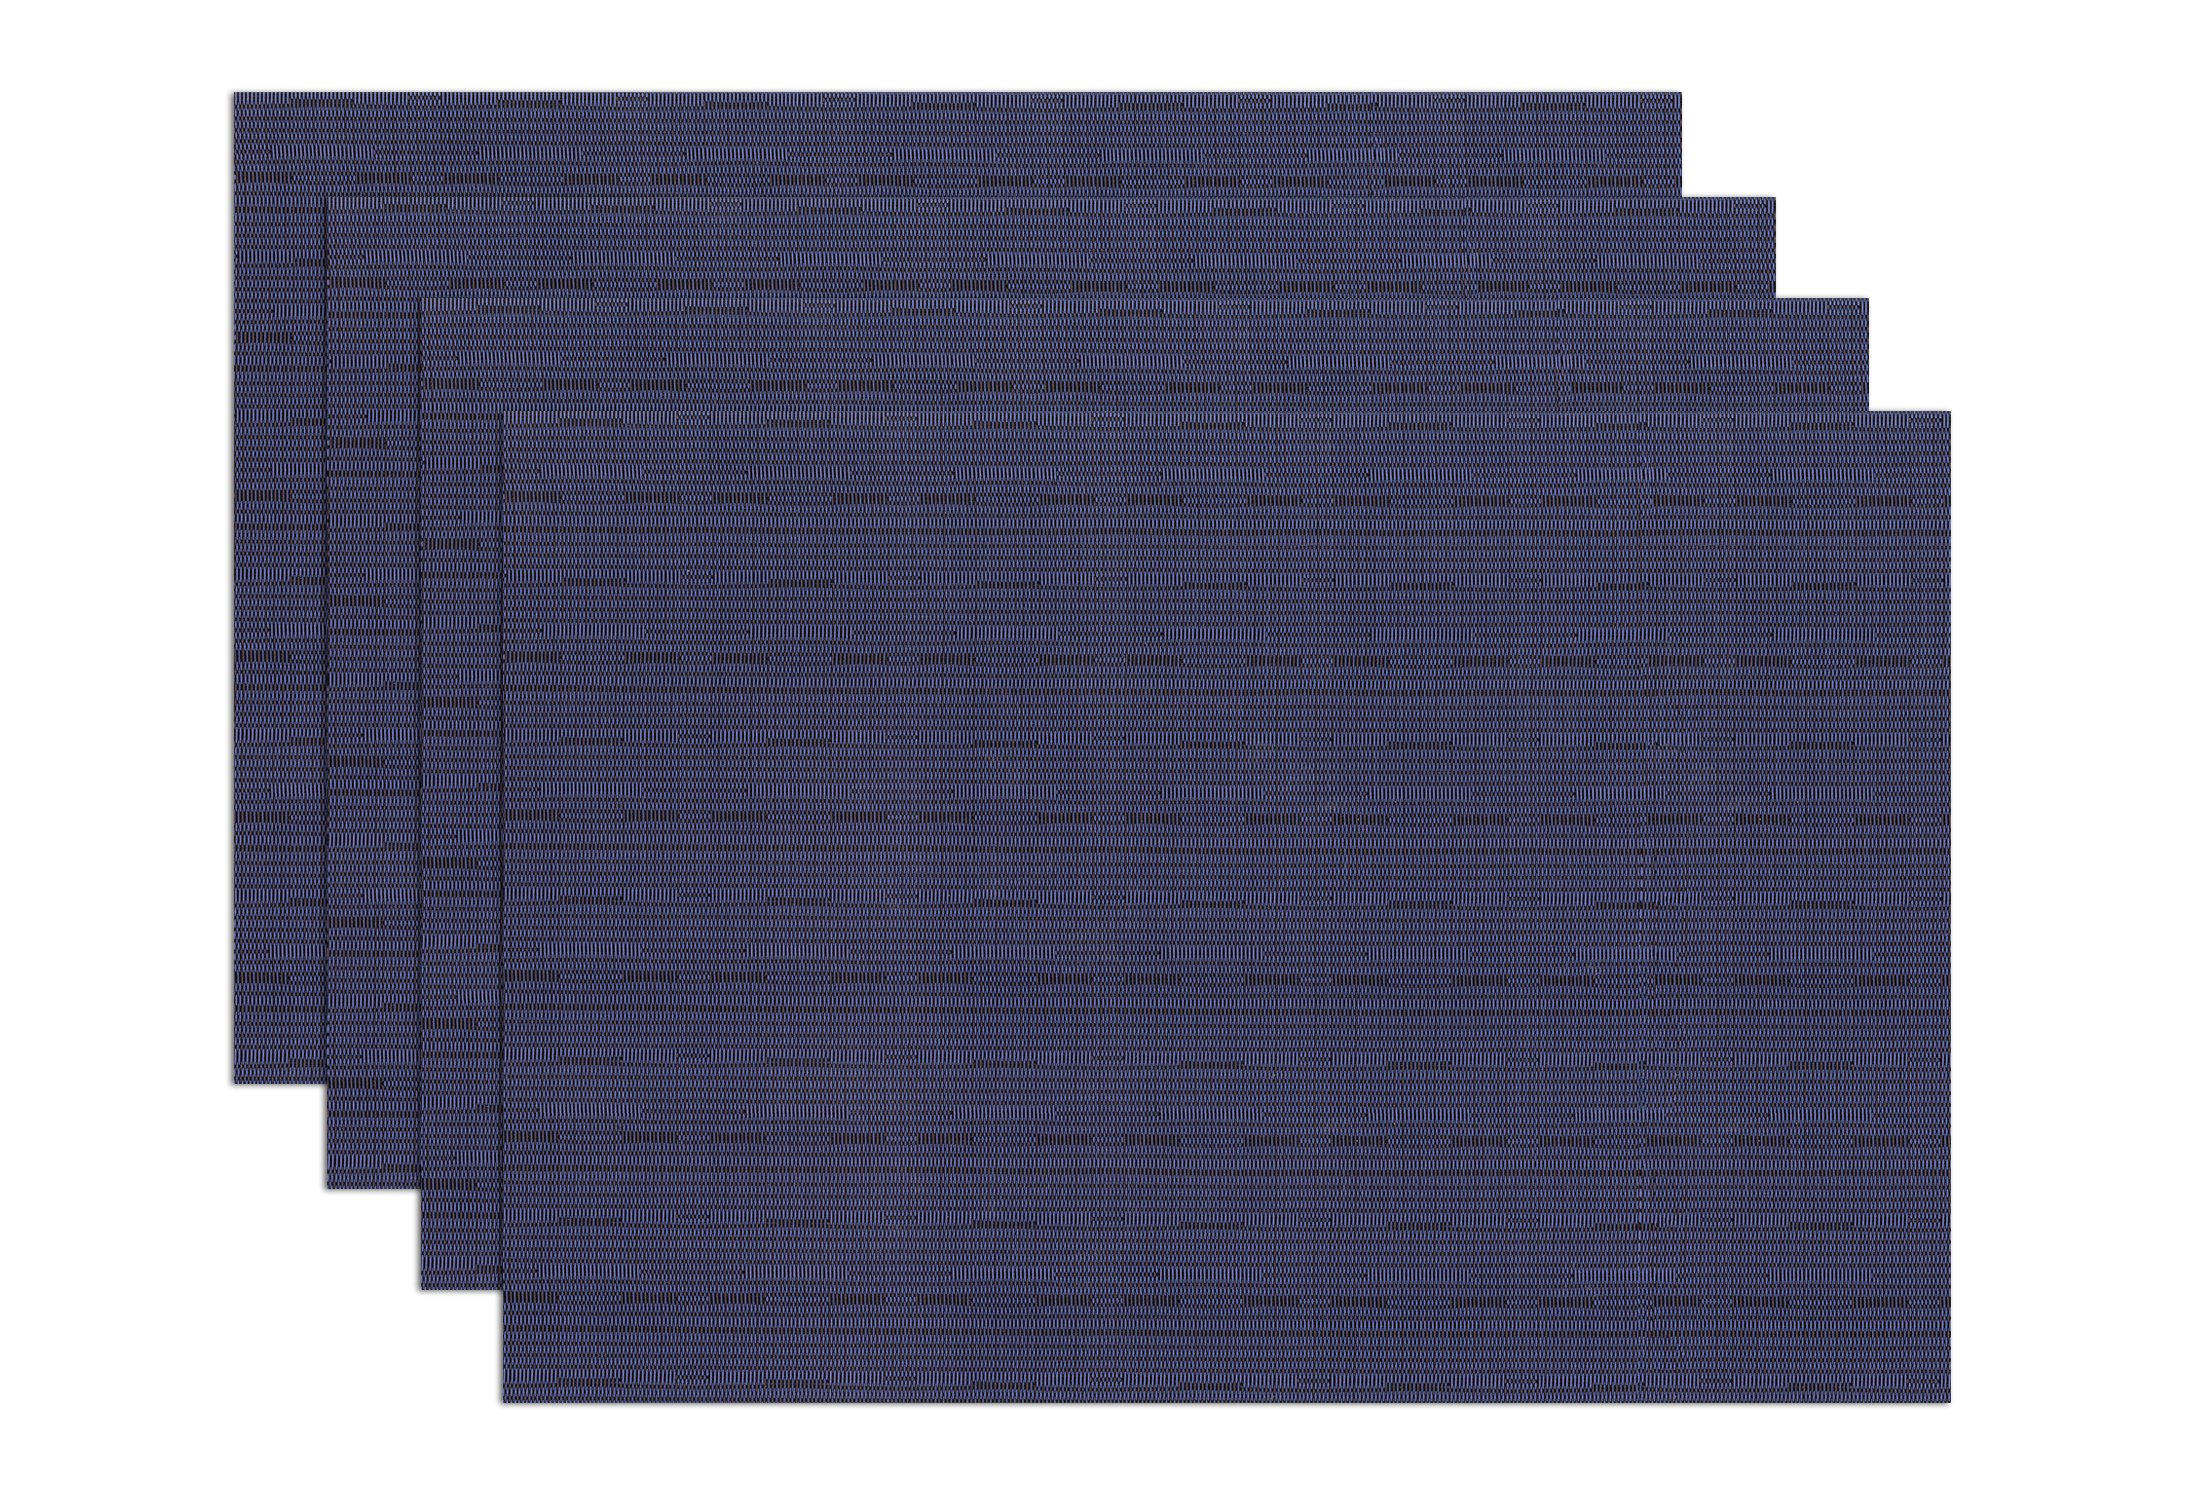 Ritz TechStyle Reversible Woven Grass Cloth Placemats, Blue, Set of 4 - Set of 4 grass cloth textured reversible placemats; blue color Made from easy to clean woven, PVC coated polyester: long lasting, durable, protects table. Features a natural grass cloth look in camel; great for indoor or outdoor dining - placemats, kitchen-dining-room-table-linens, kitchen-dining-room - 91EDDNYzHwL -